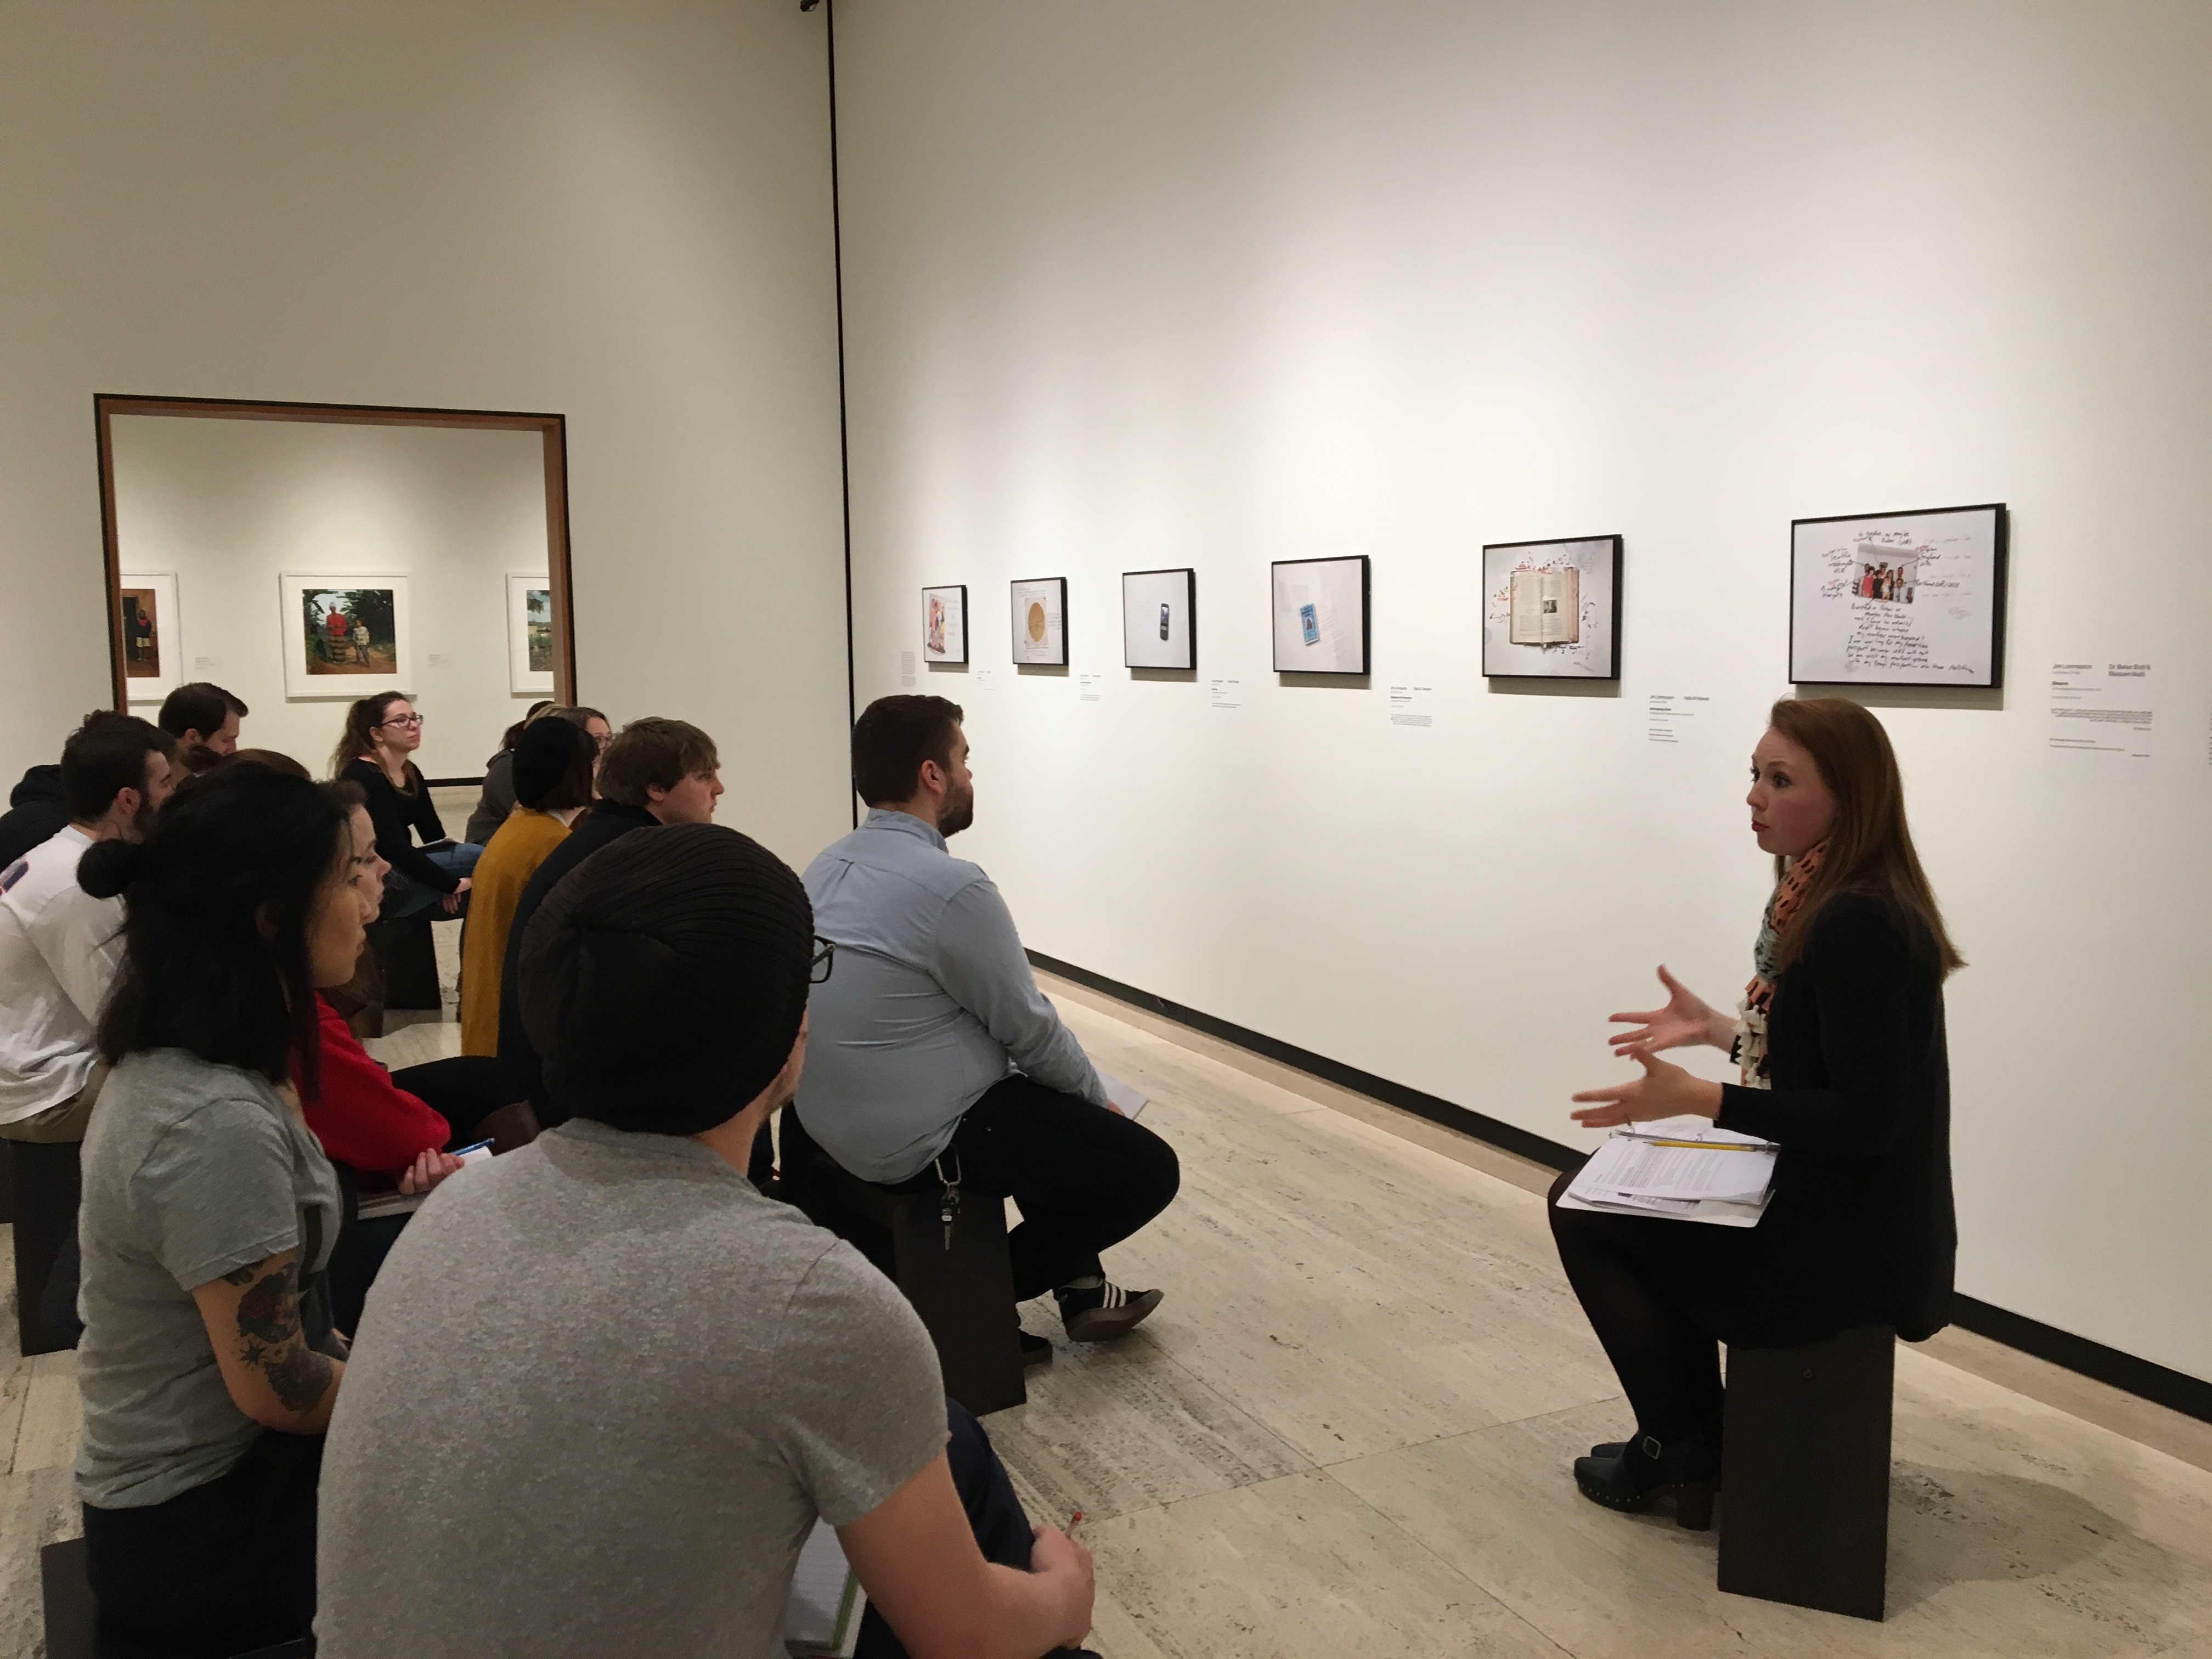 Students in the Nebraska Mosaic class listen as Abby Groth, assistant curator of public programs, (far right) discusses the nuances of Jim Lommasson's exhibit at the Sheldon Art Museum. (Photo by Michelle Hassler)